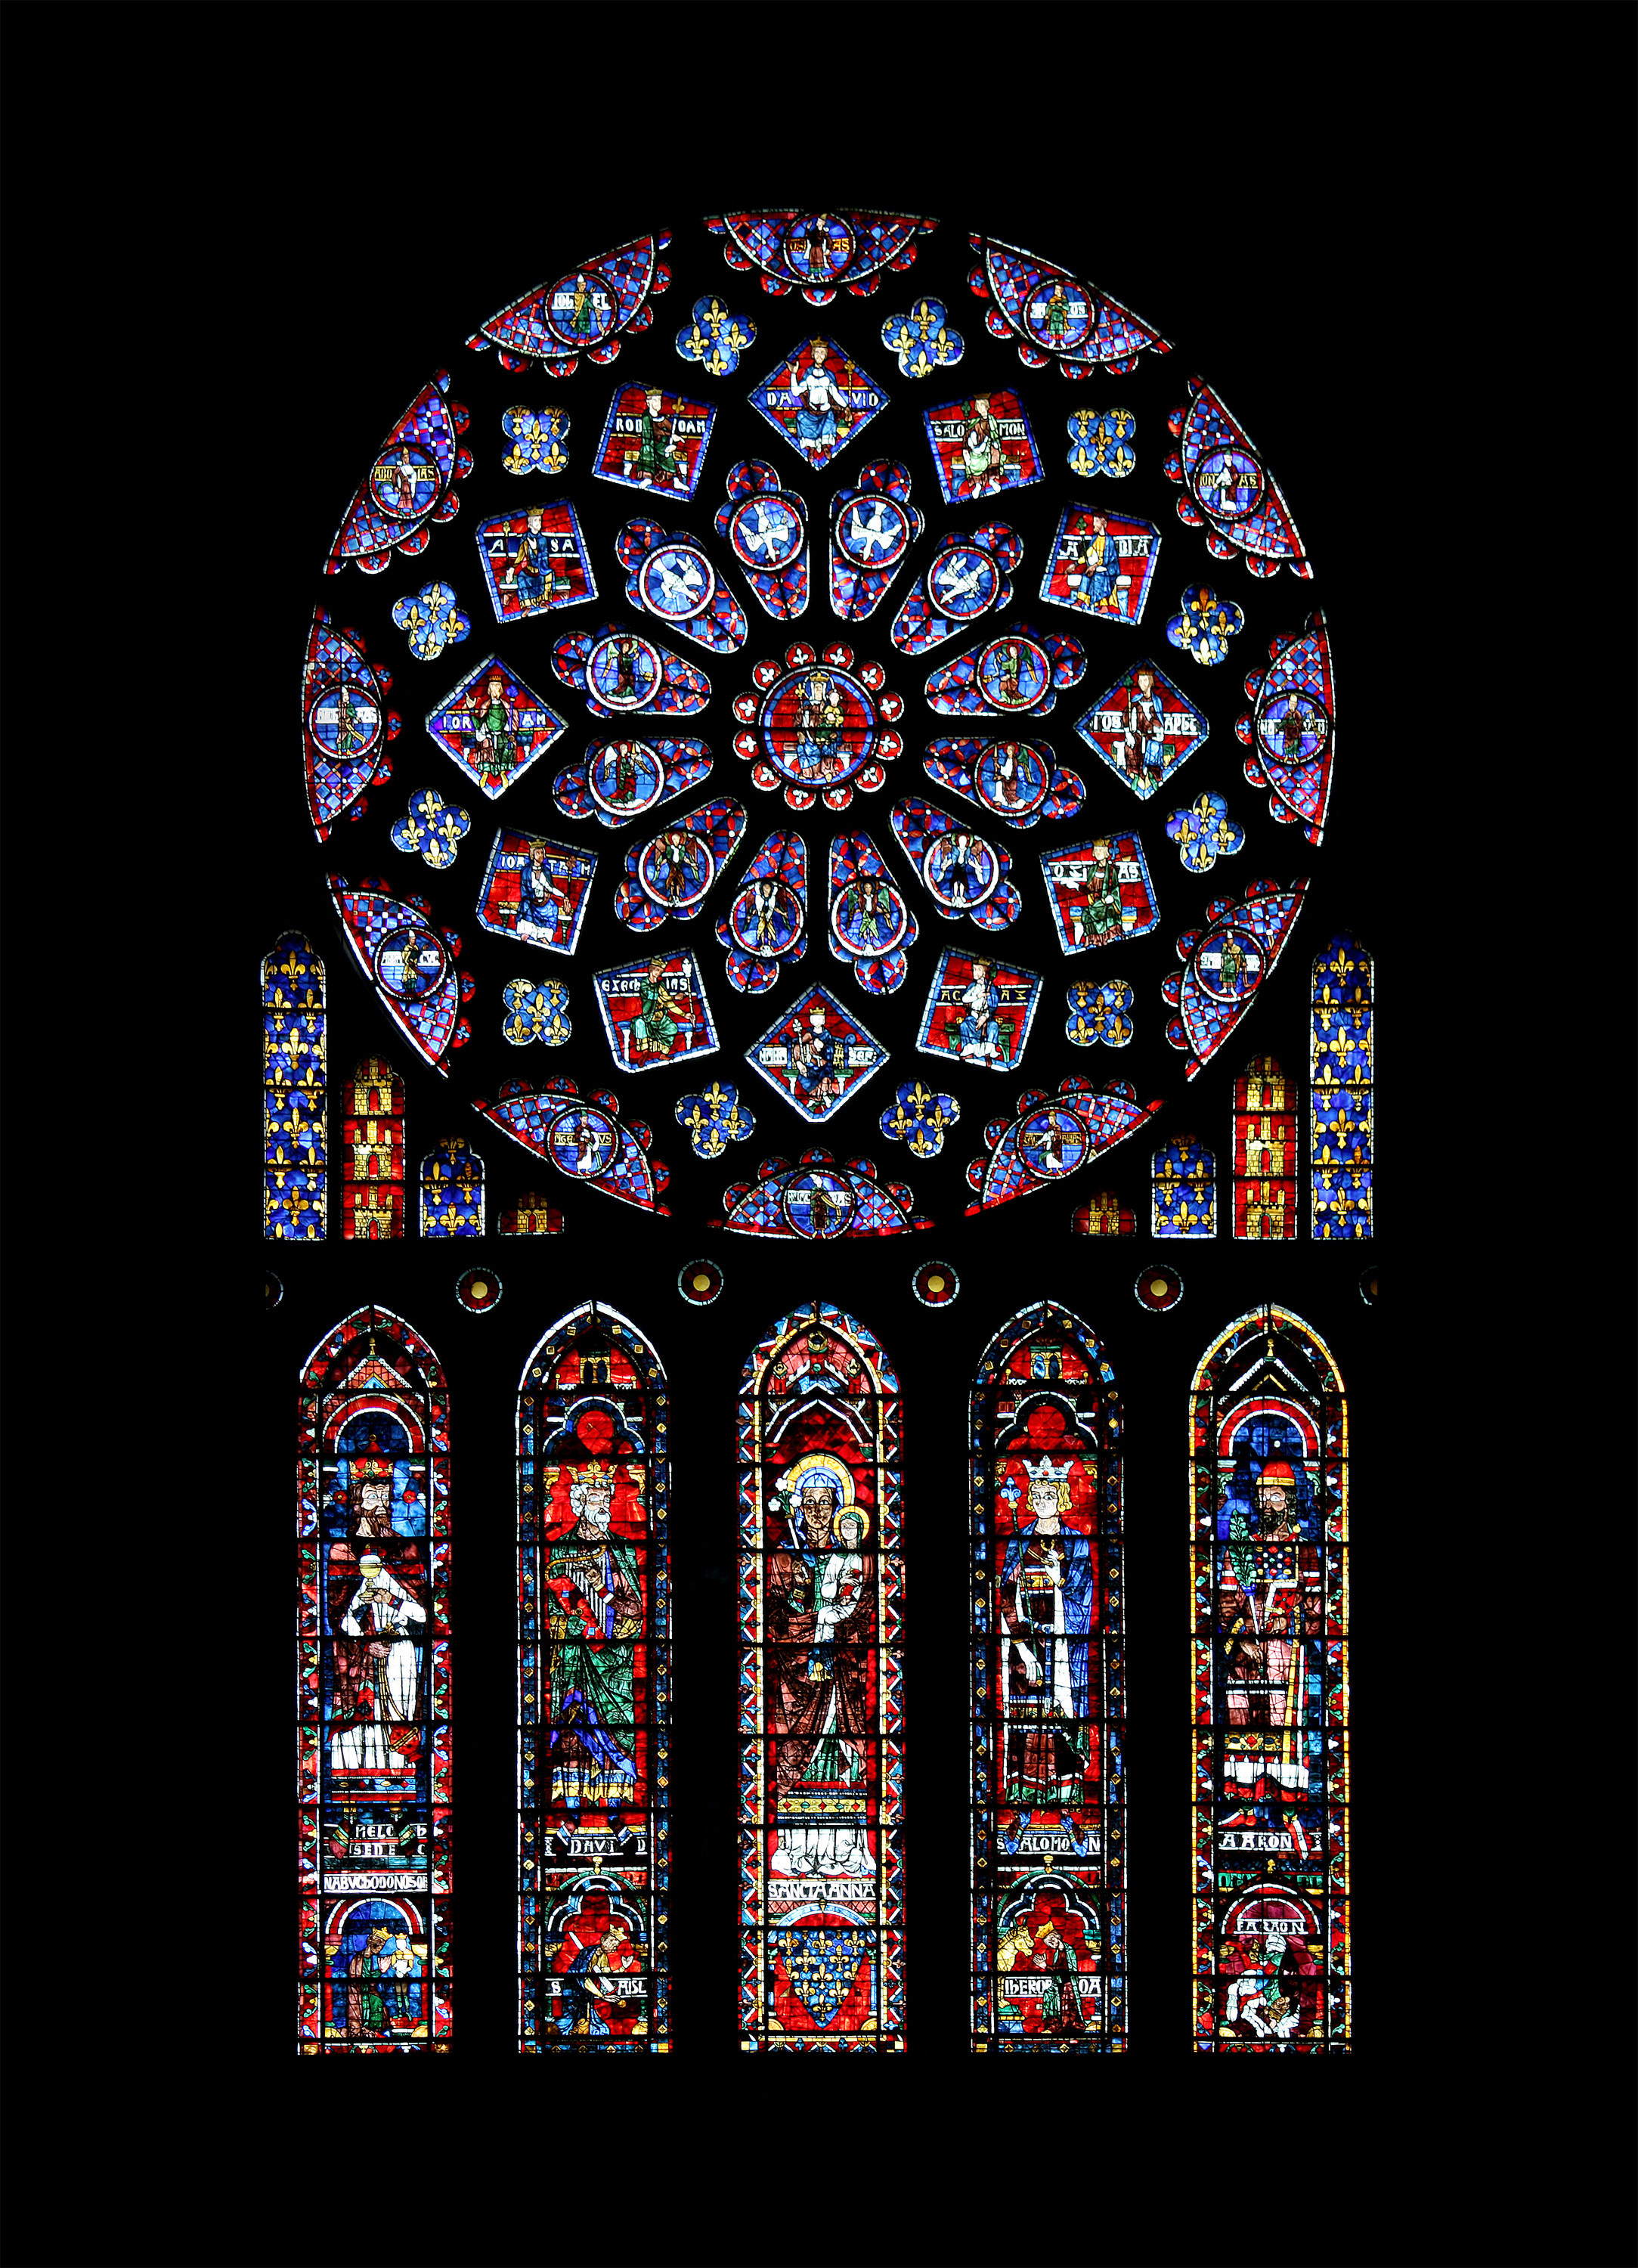 stained glass - wikipedia